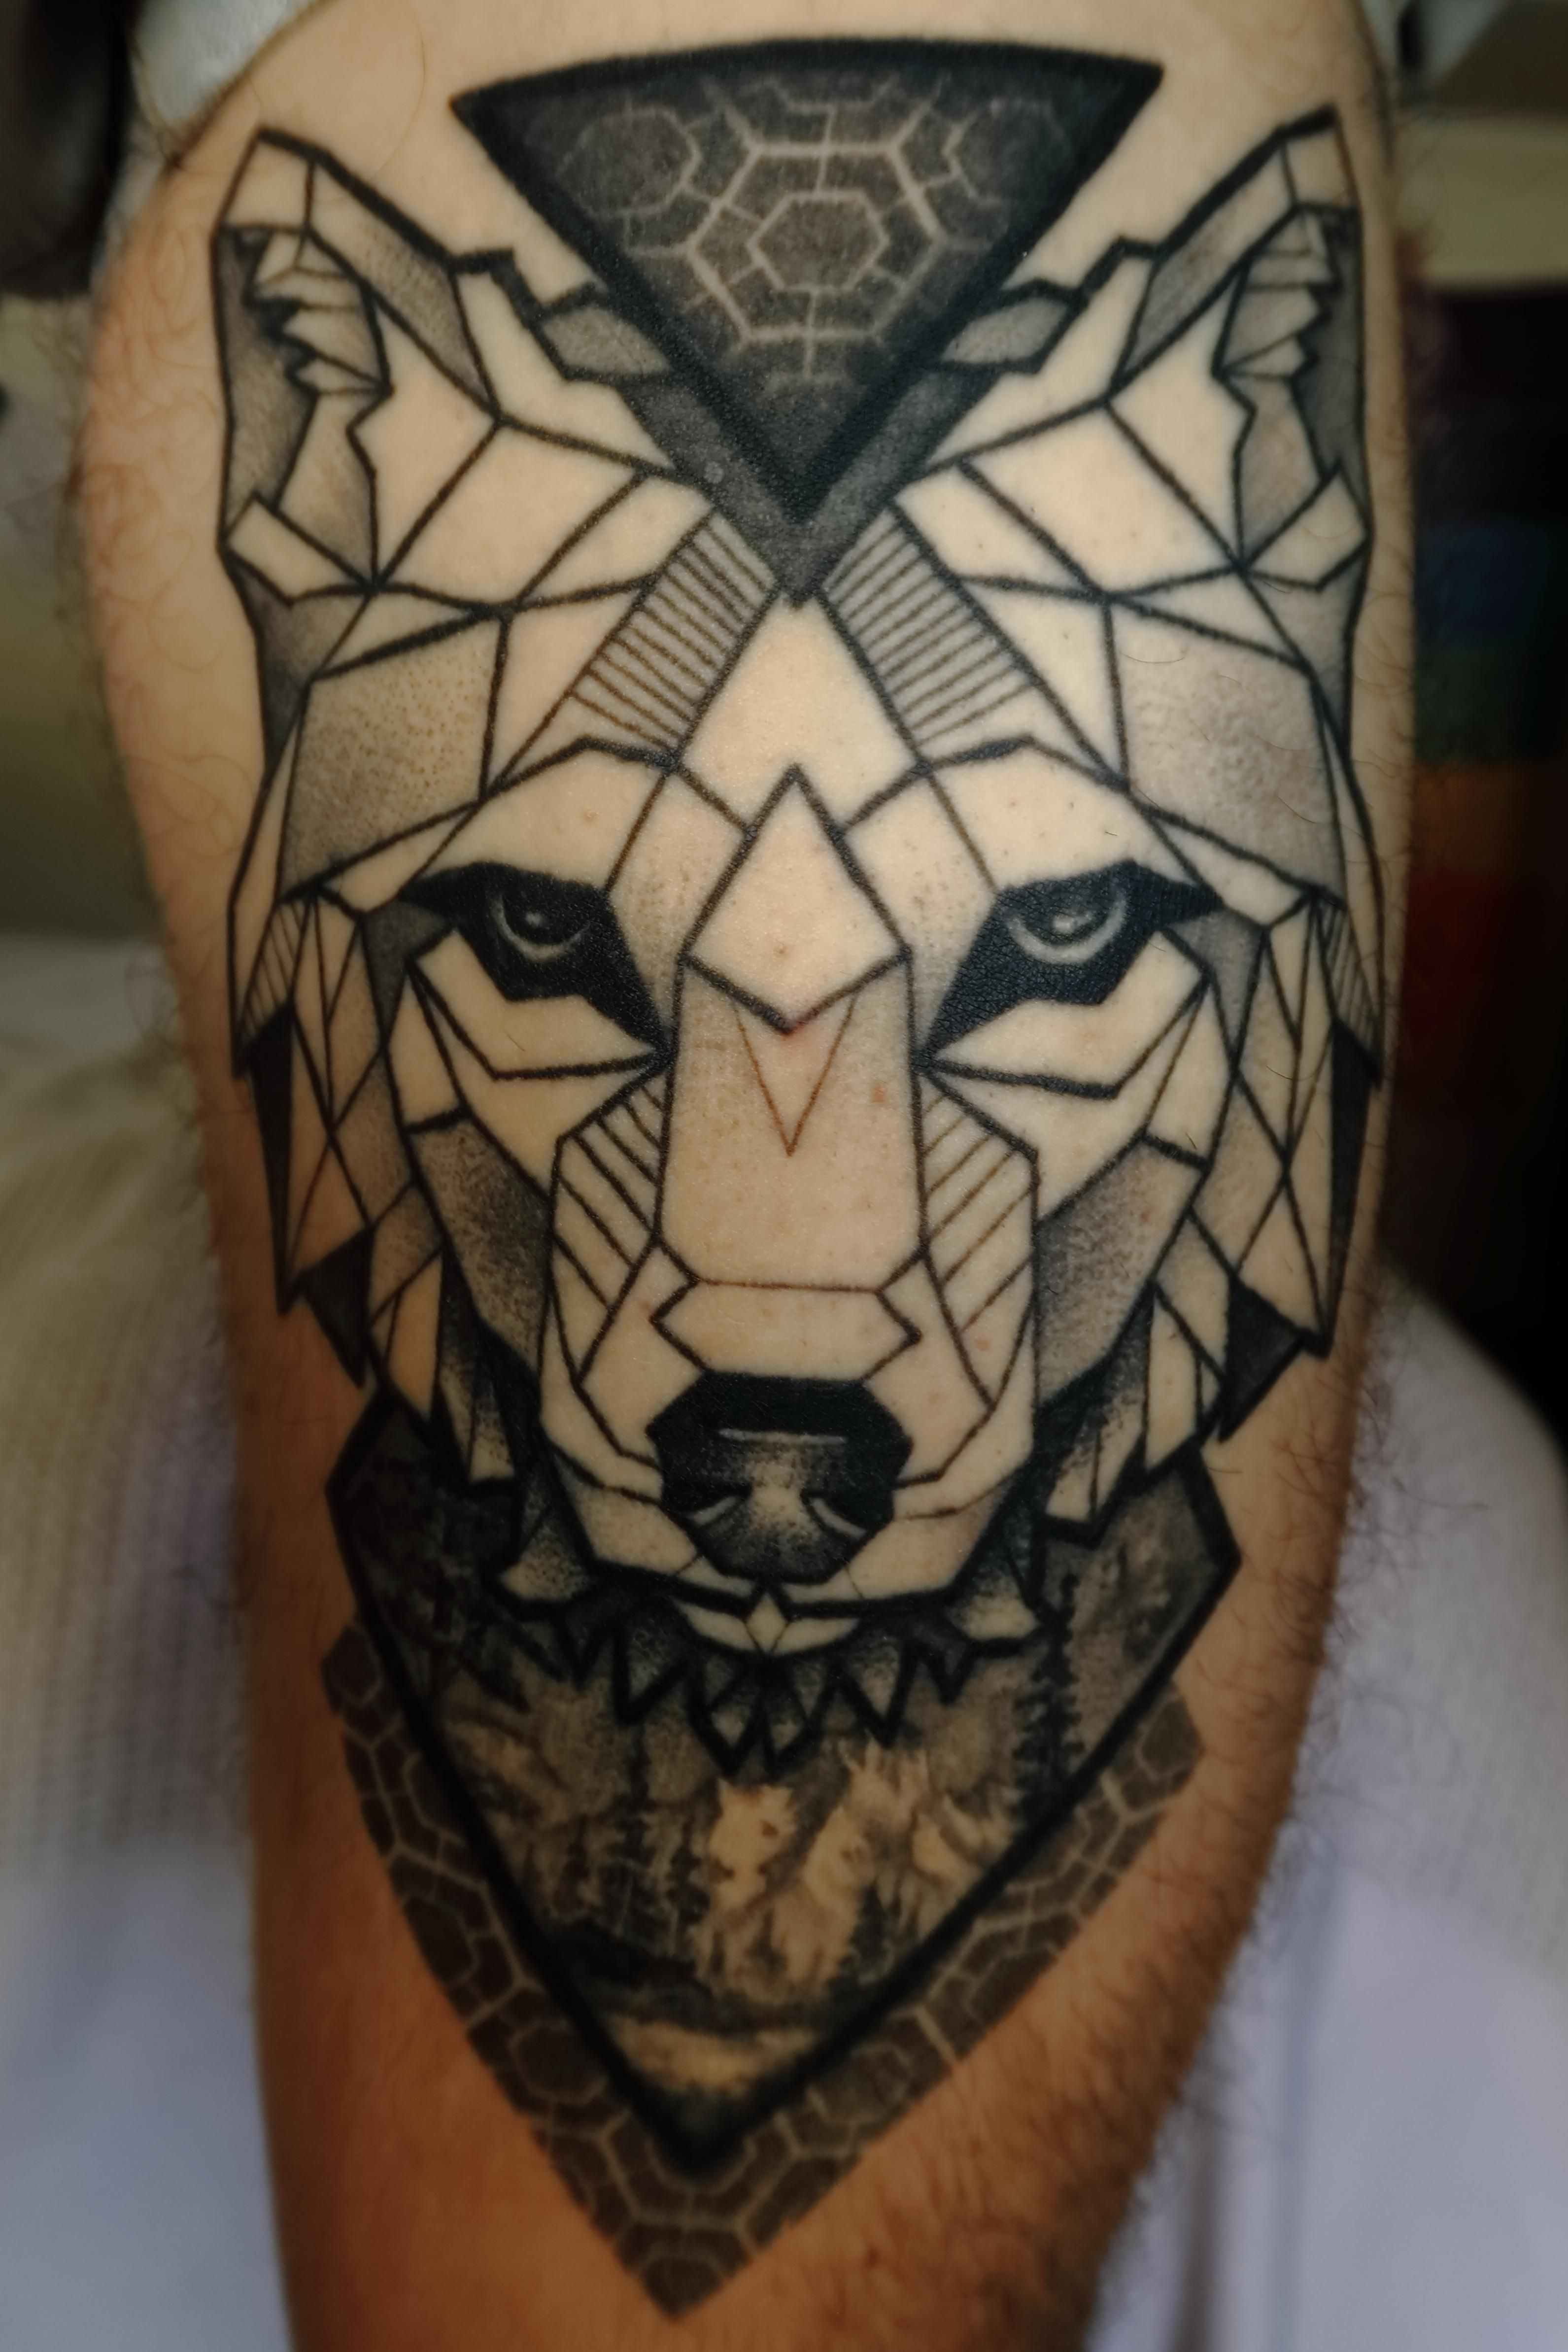 Geo wolf by matej bacic at black diamond port adelaide in